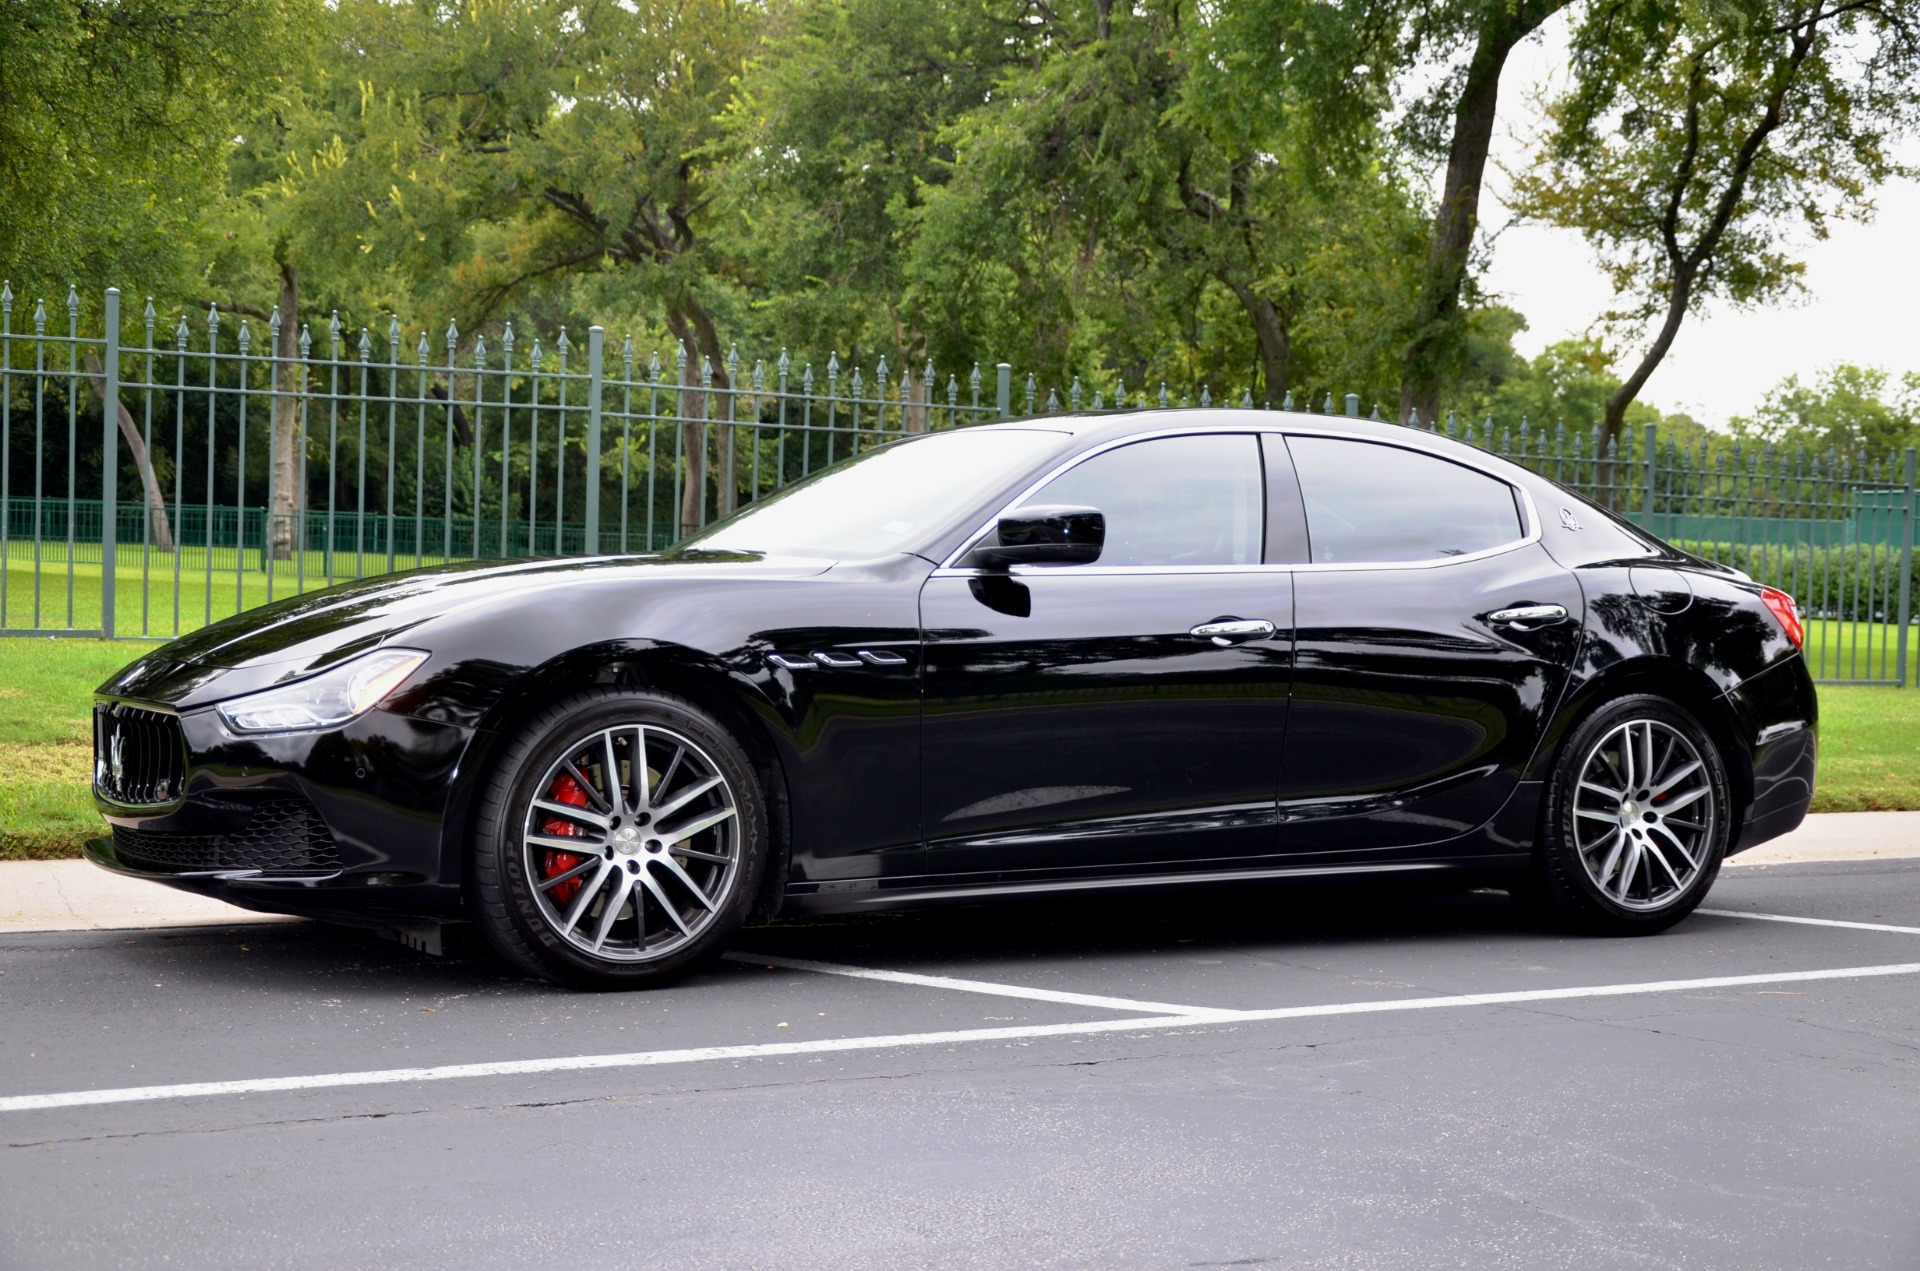 2014 Maserati Ghibli for sale Sold Platinum Motorcars in Dallas TX 1